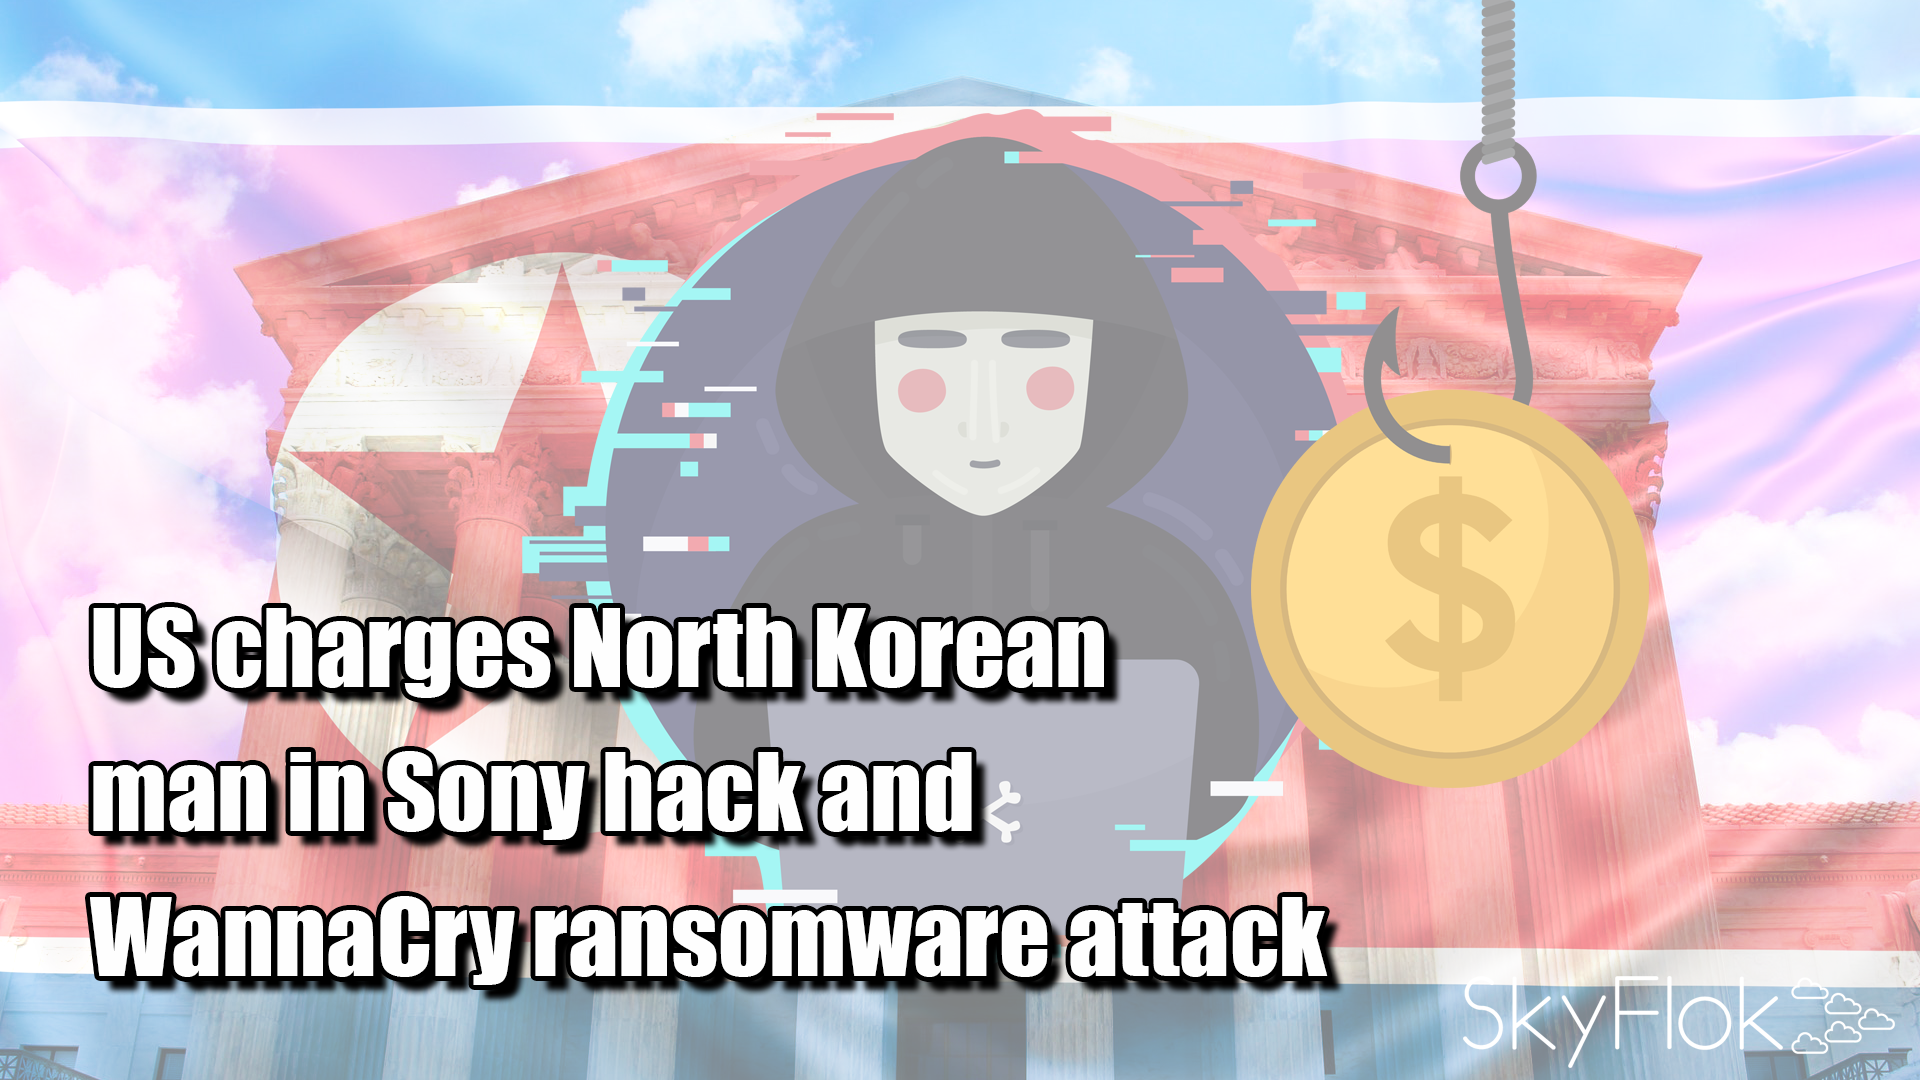 US charges North Korean man in Sony hack and WannaCry ransomware attack